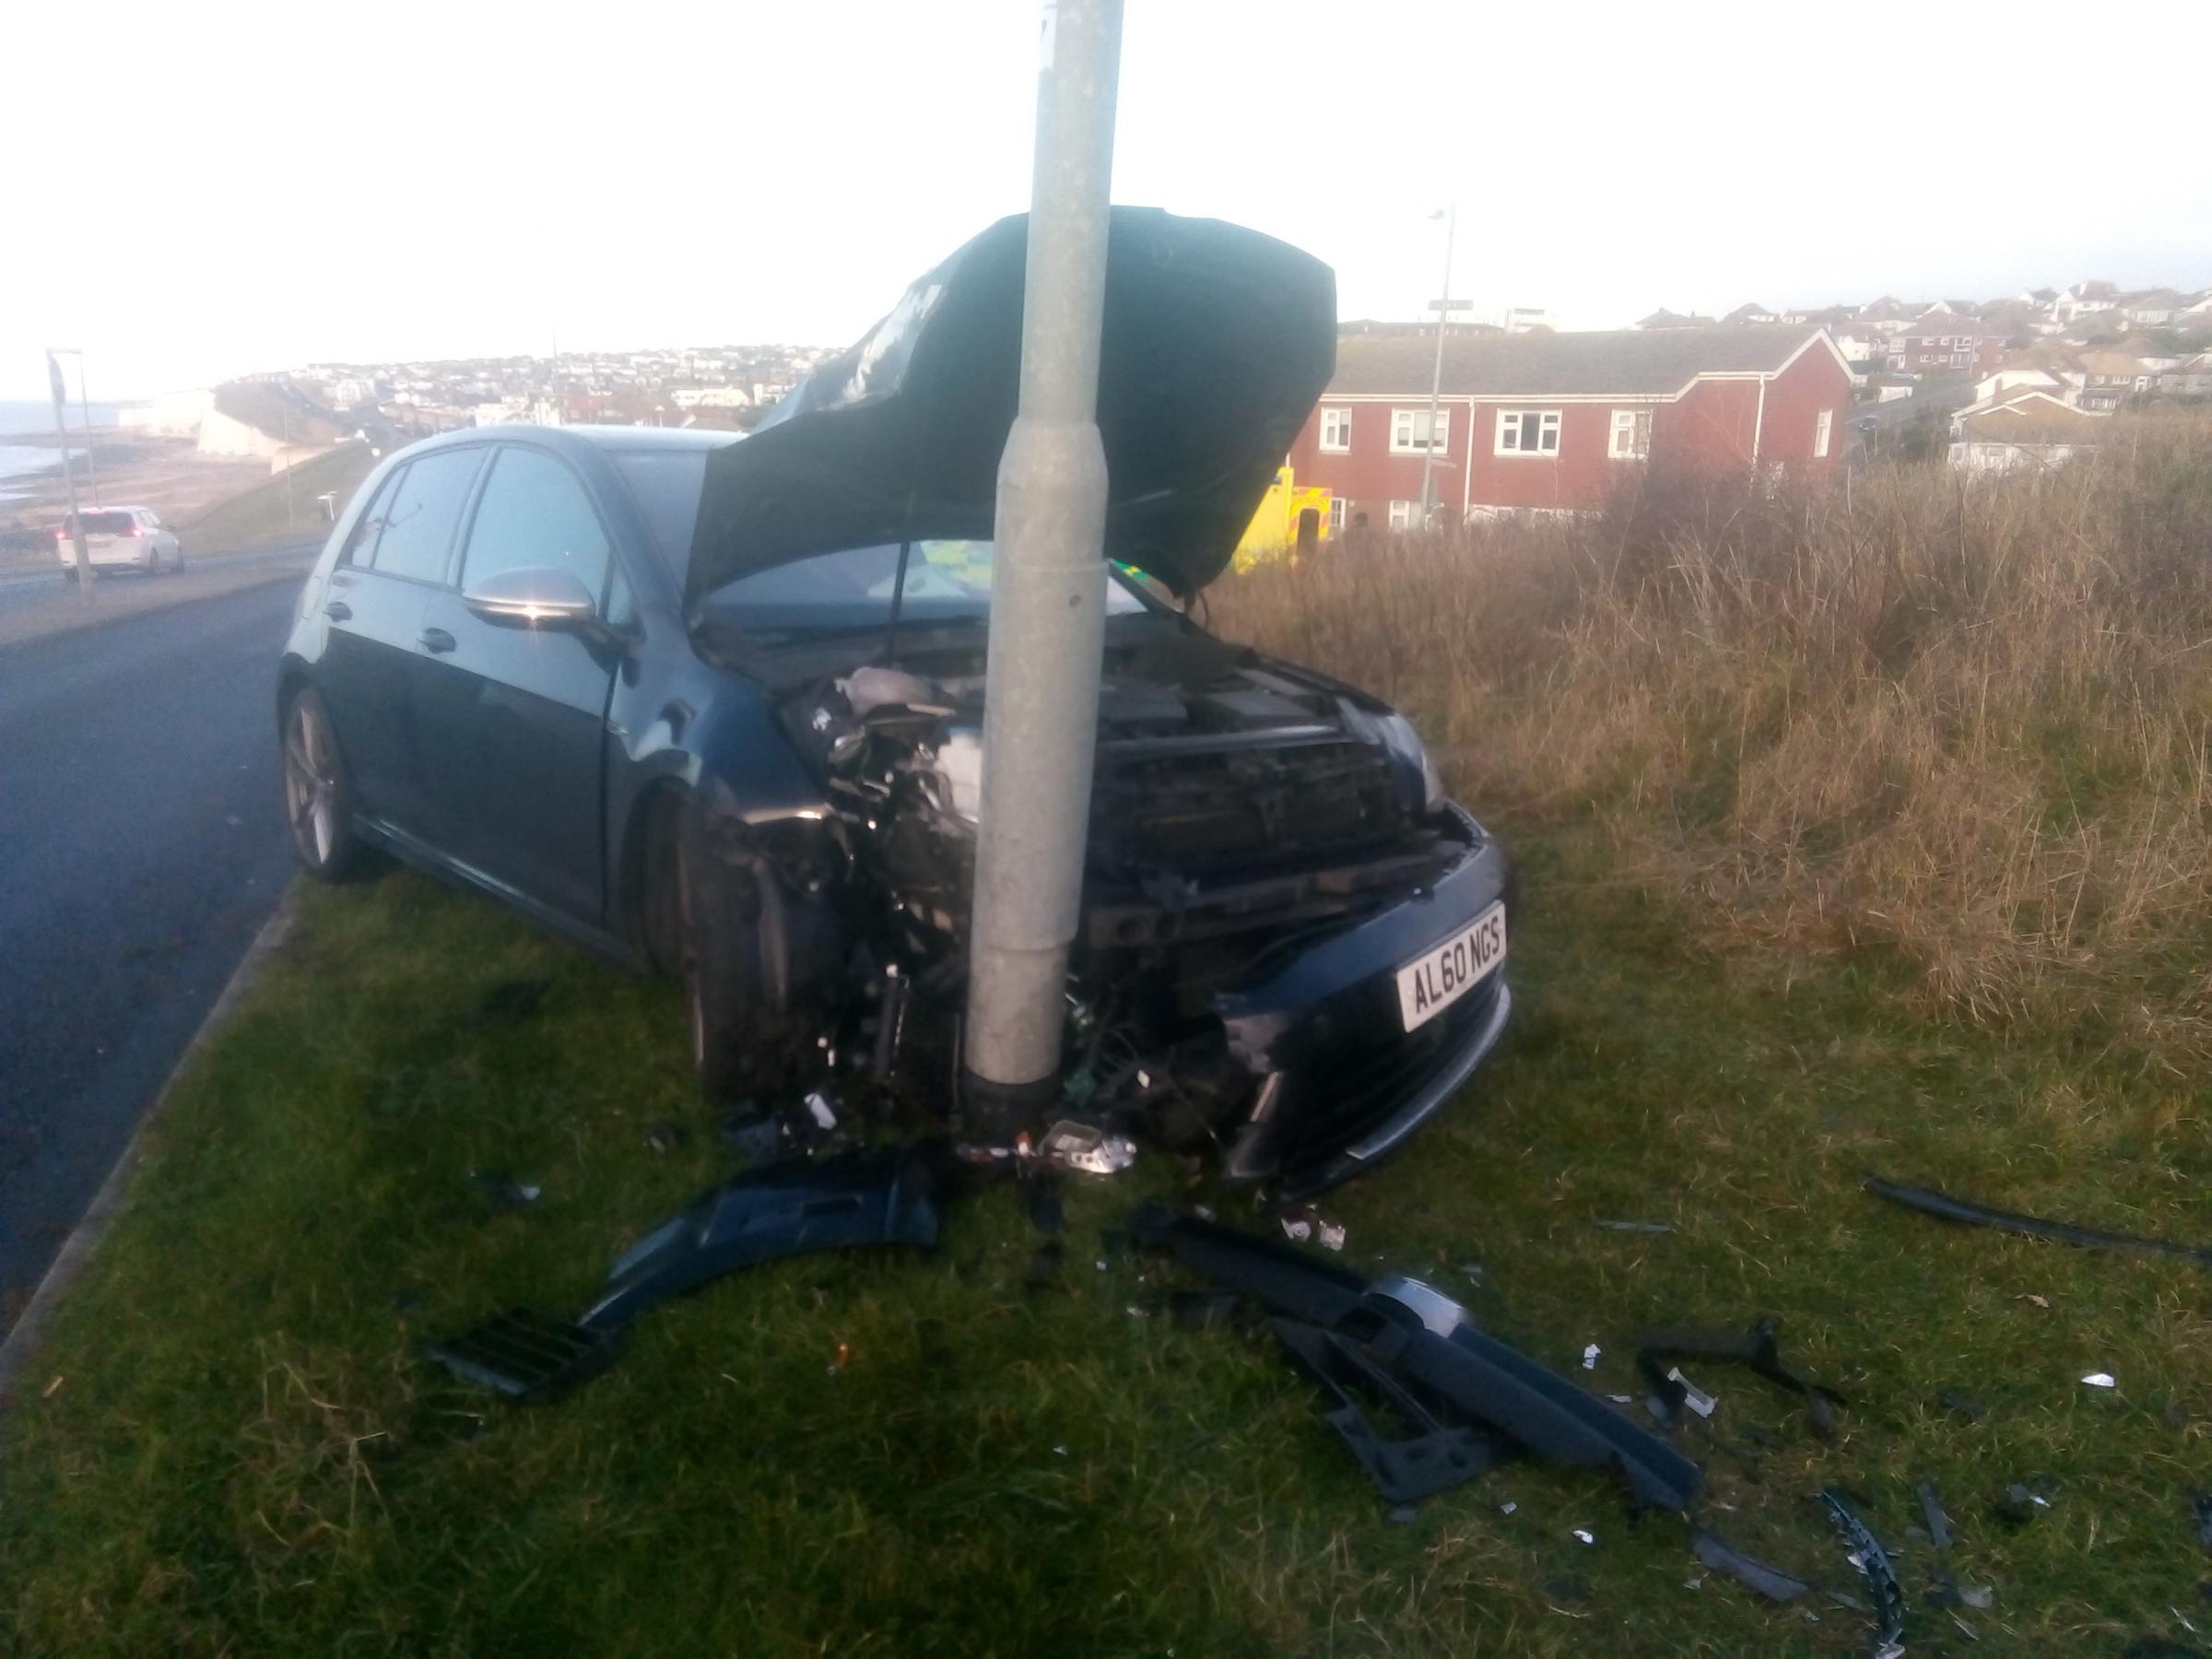 Car smashes into lamppost on A259: police and ambulance on the scene